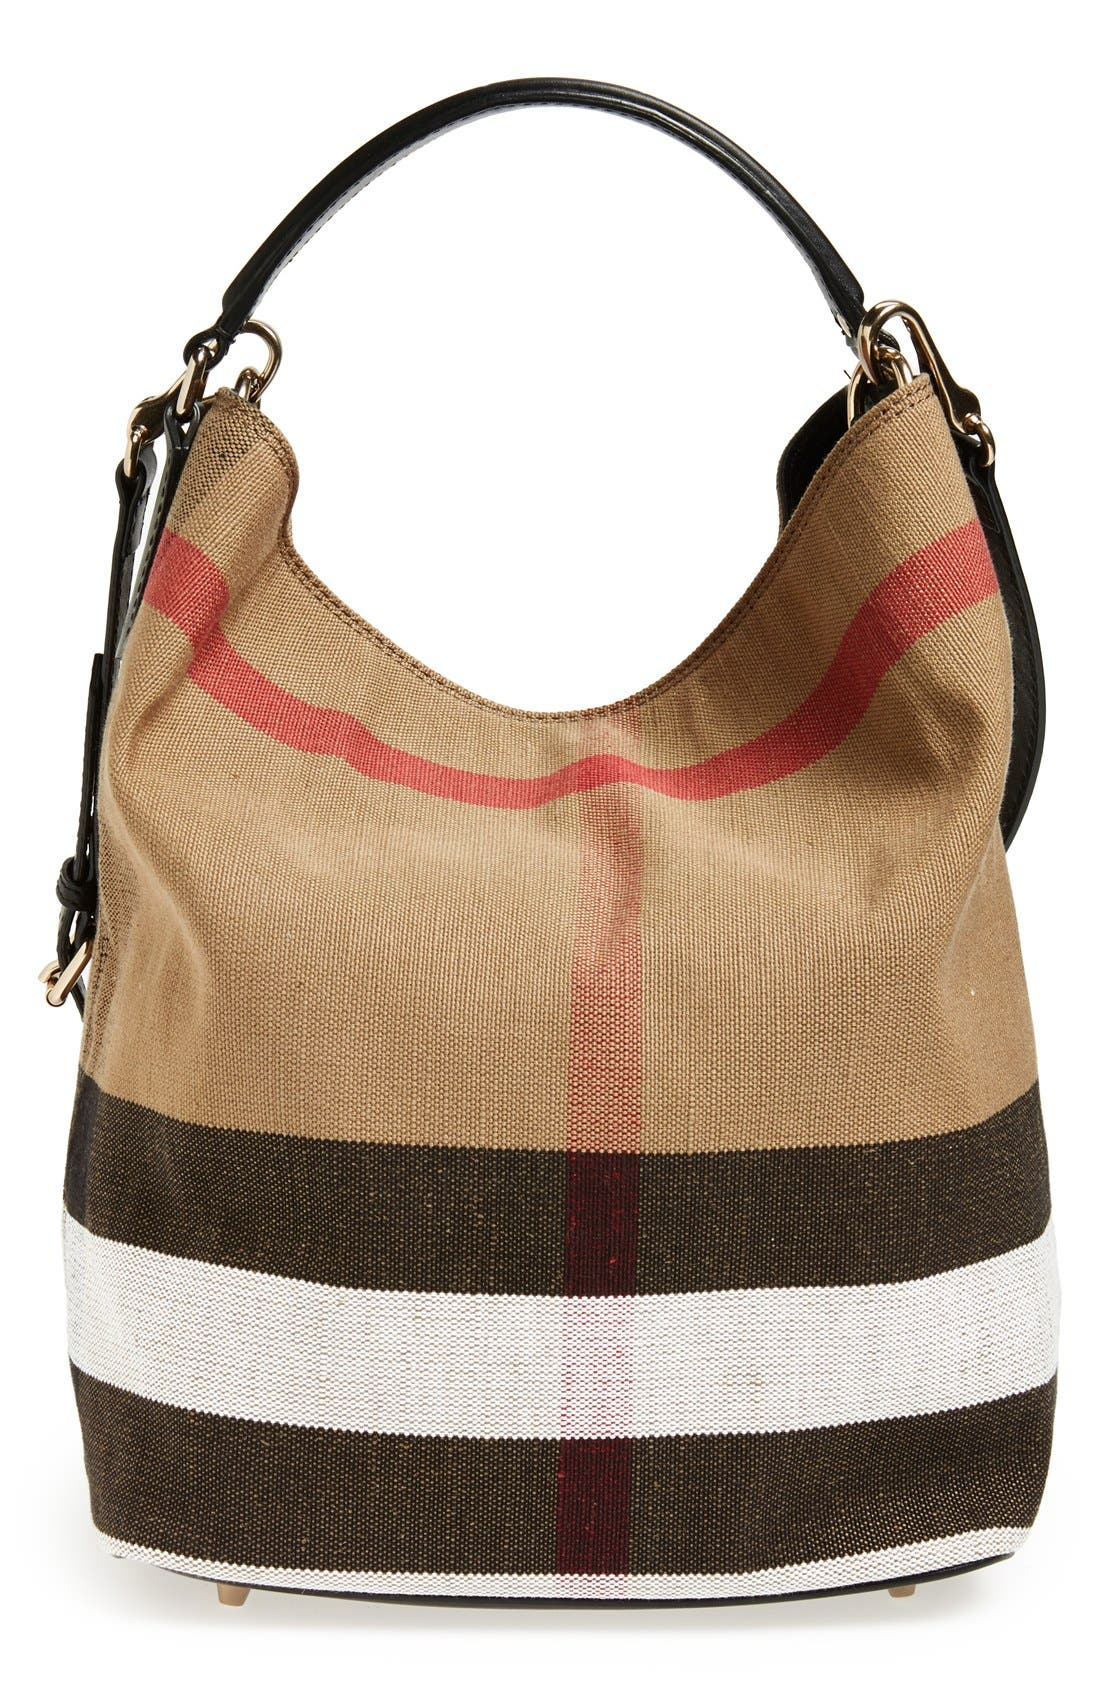 Burberry Medium Susanna Check Print Bucket Bag